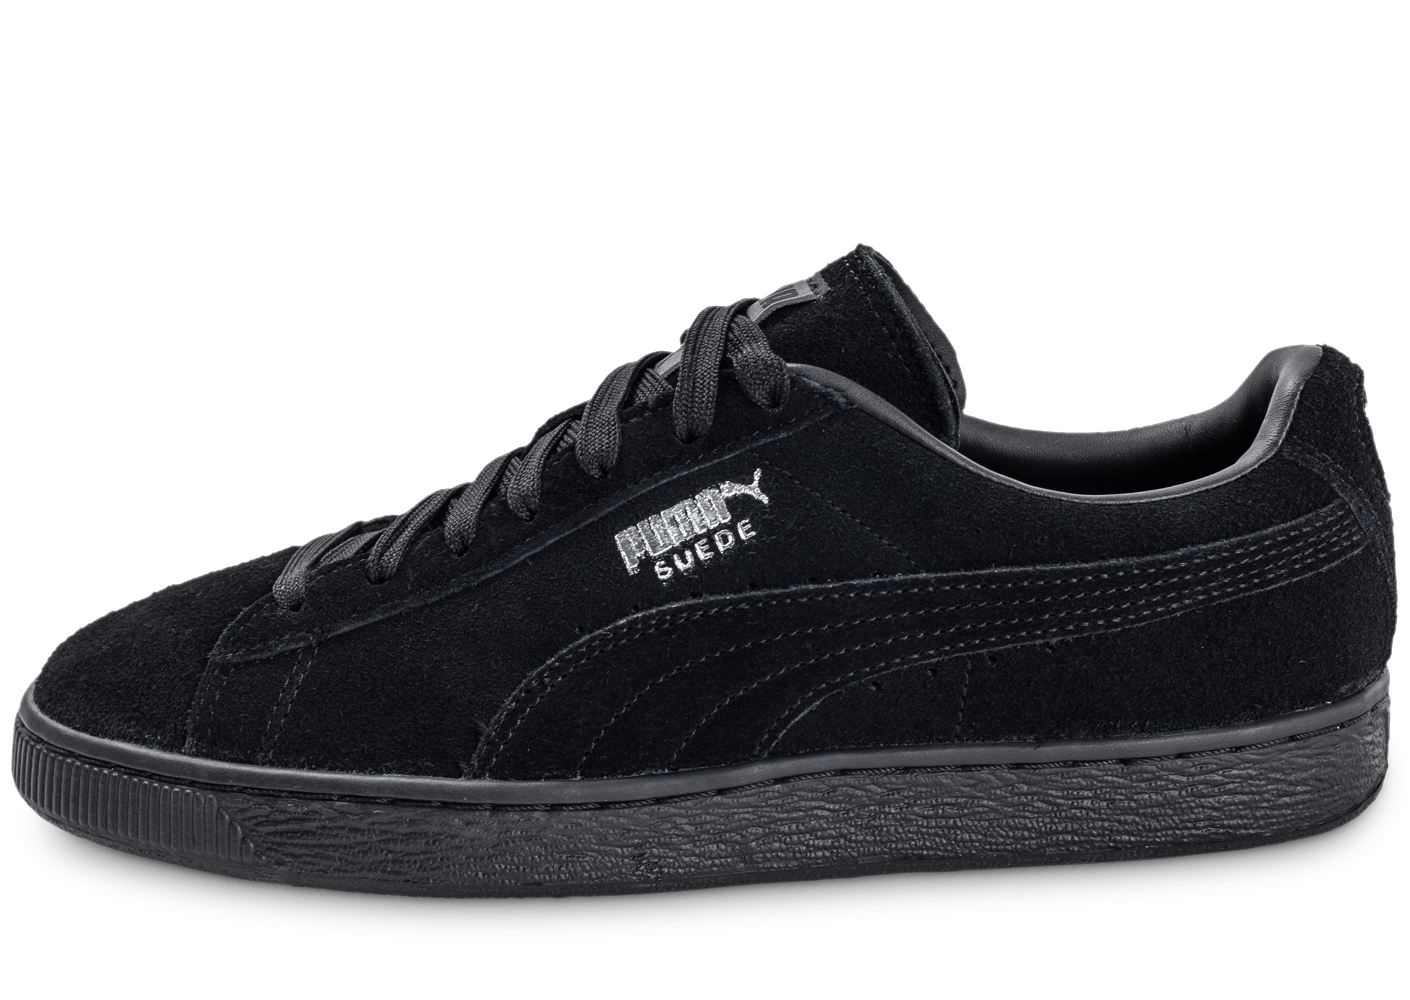 puma suede classic monochrome noire chaussures homme chausport. Black Bedroom Furniture Sets. Home Design Ideas